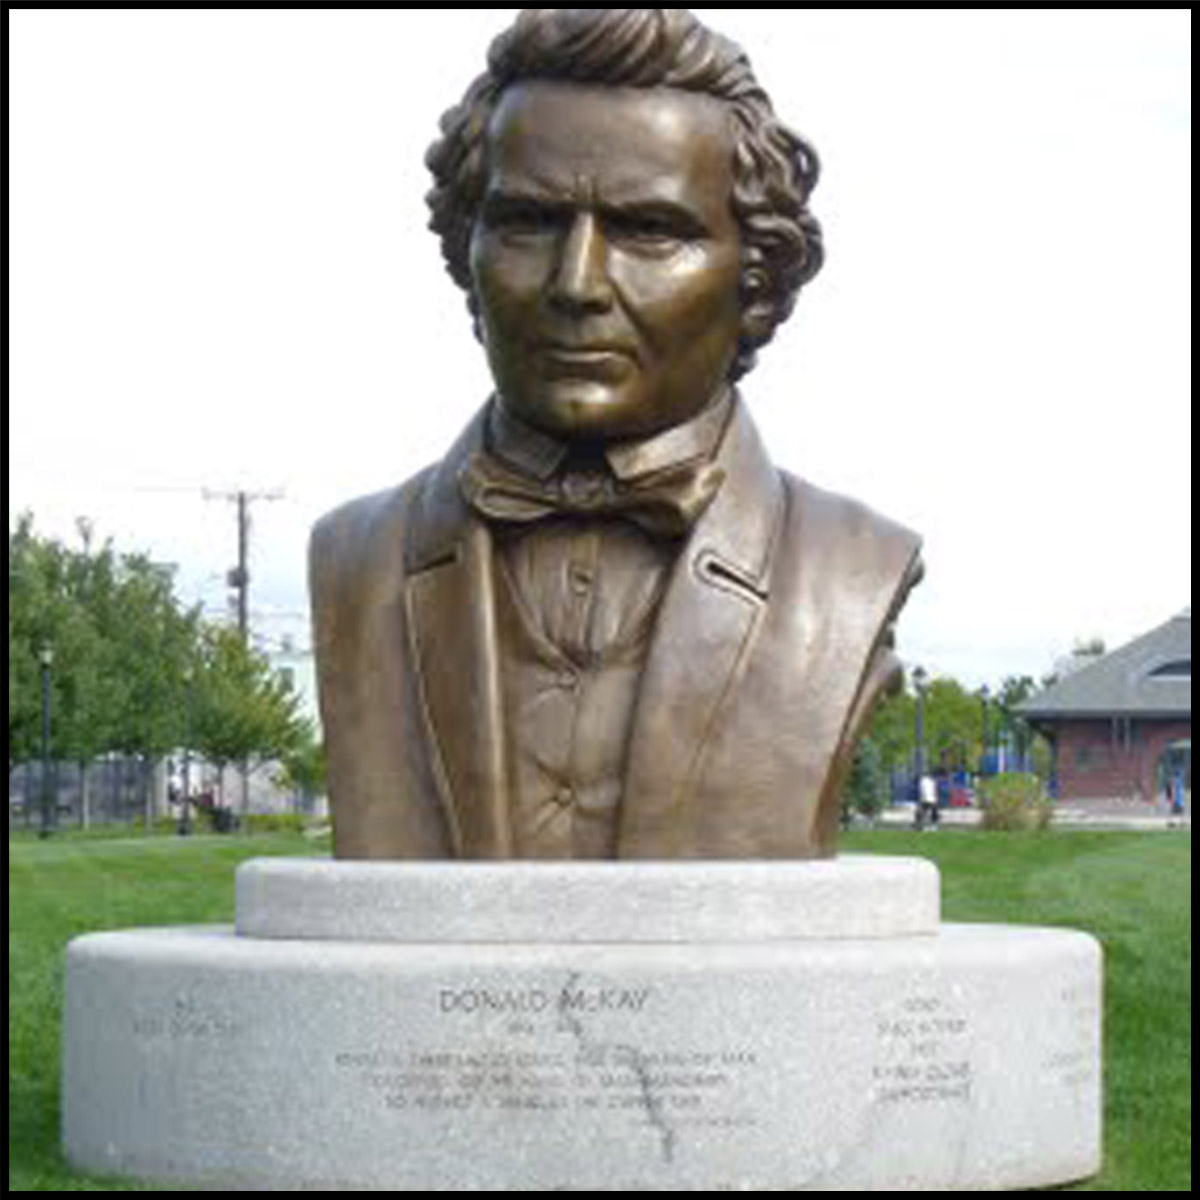 photo of monumental bronze bust of Donald McKay on stone base outdoors on grass